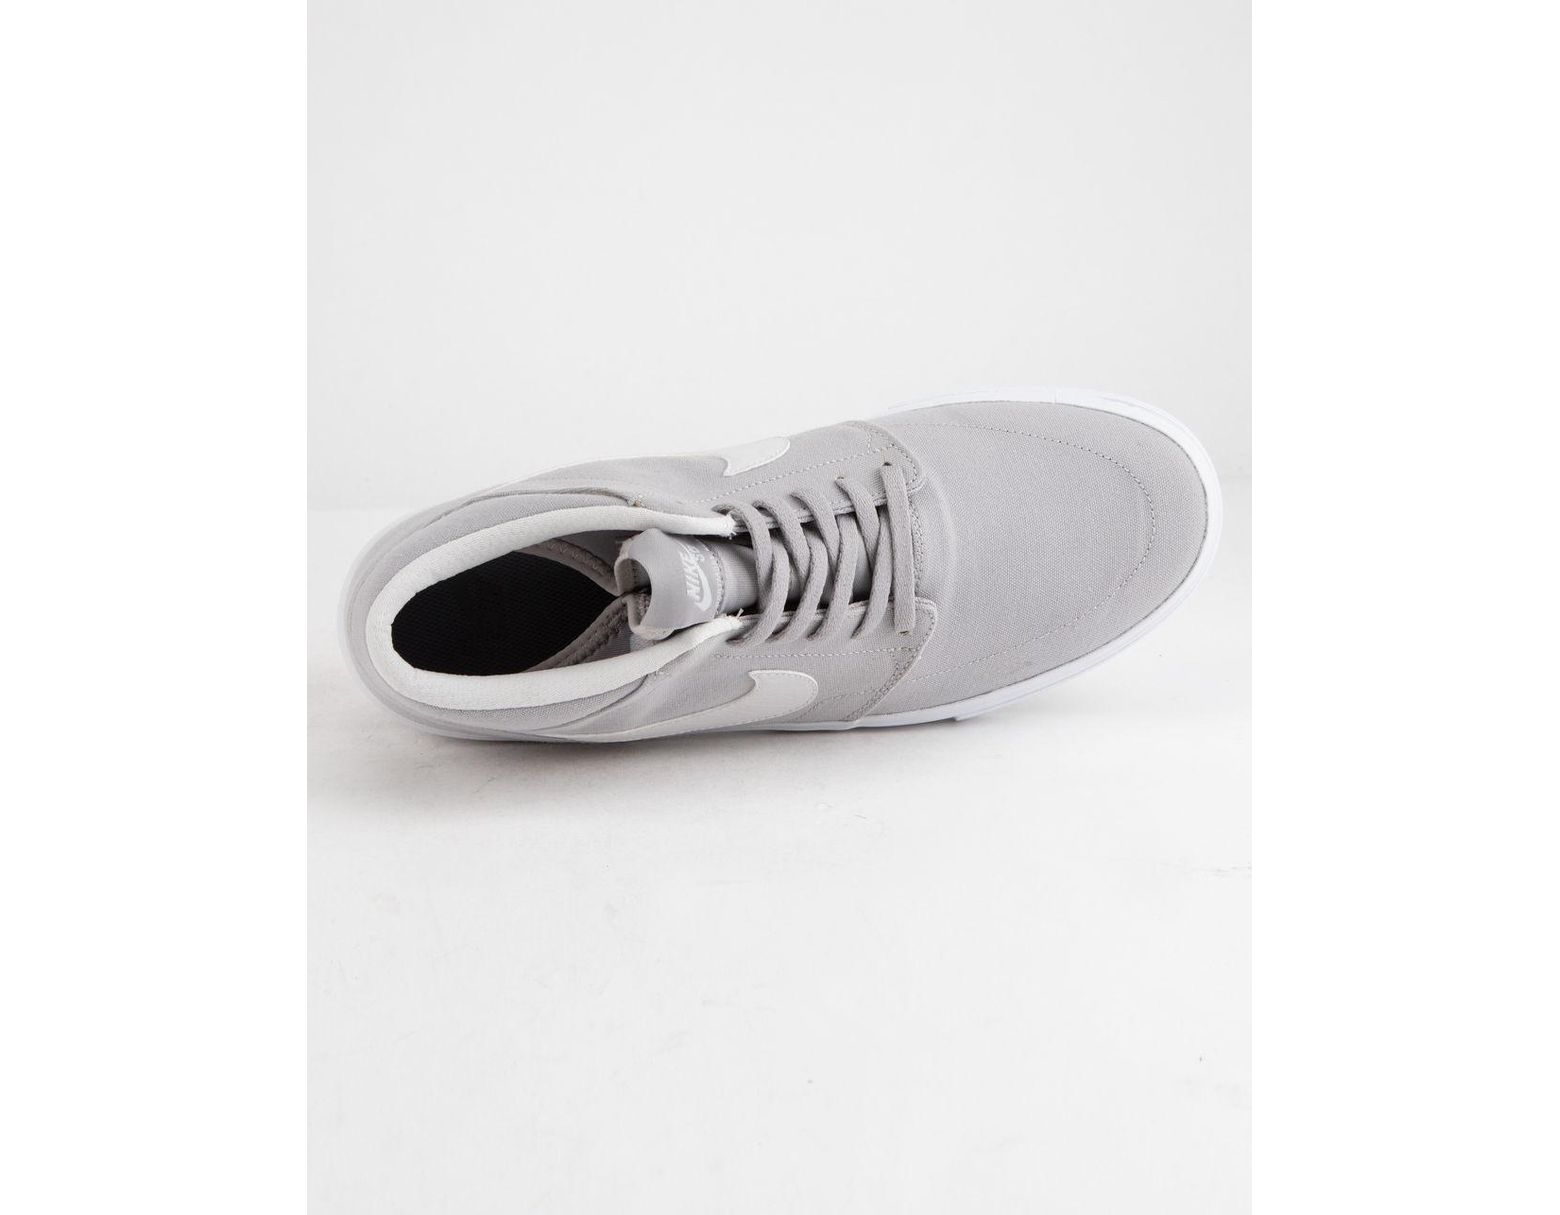 reputable site 0dc2d 675e9 Nike Portmore Ii Solarsoft Mid Canvas Atmosphere Gray   White Shoes in White  for Men - Lyst